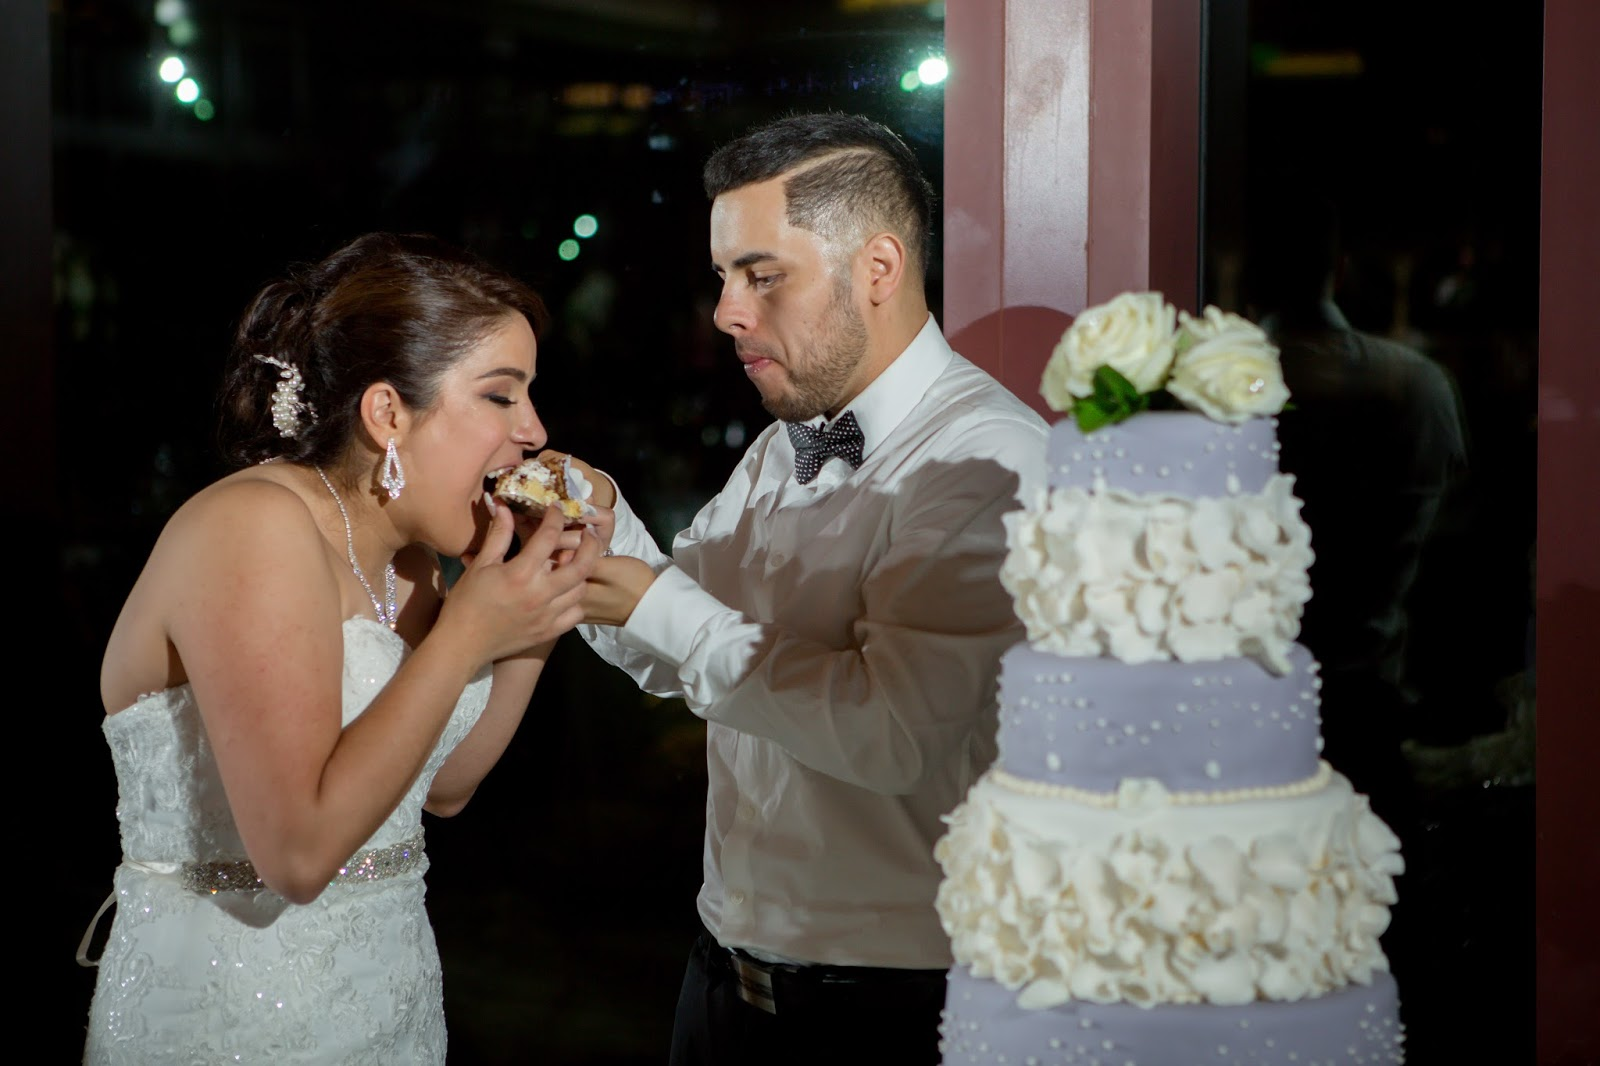 Bride and Groom take first bites of their Wedding Cake